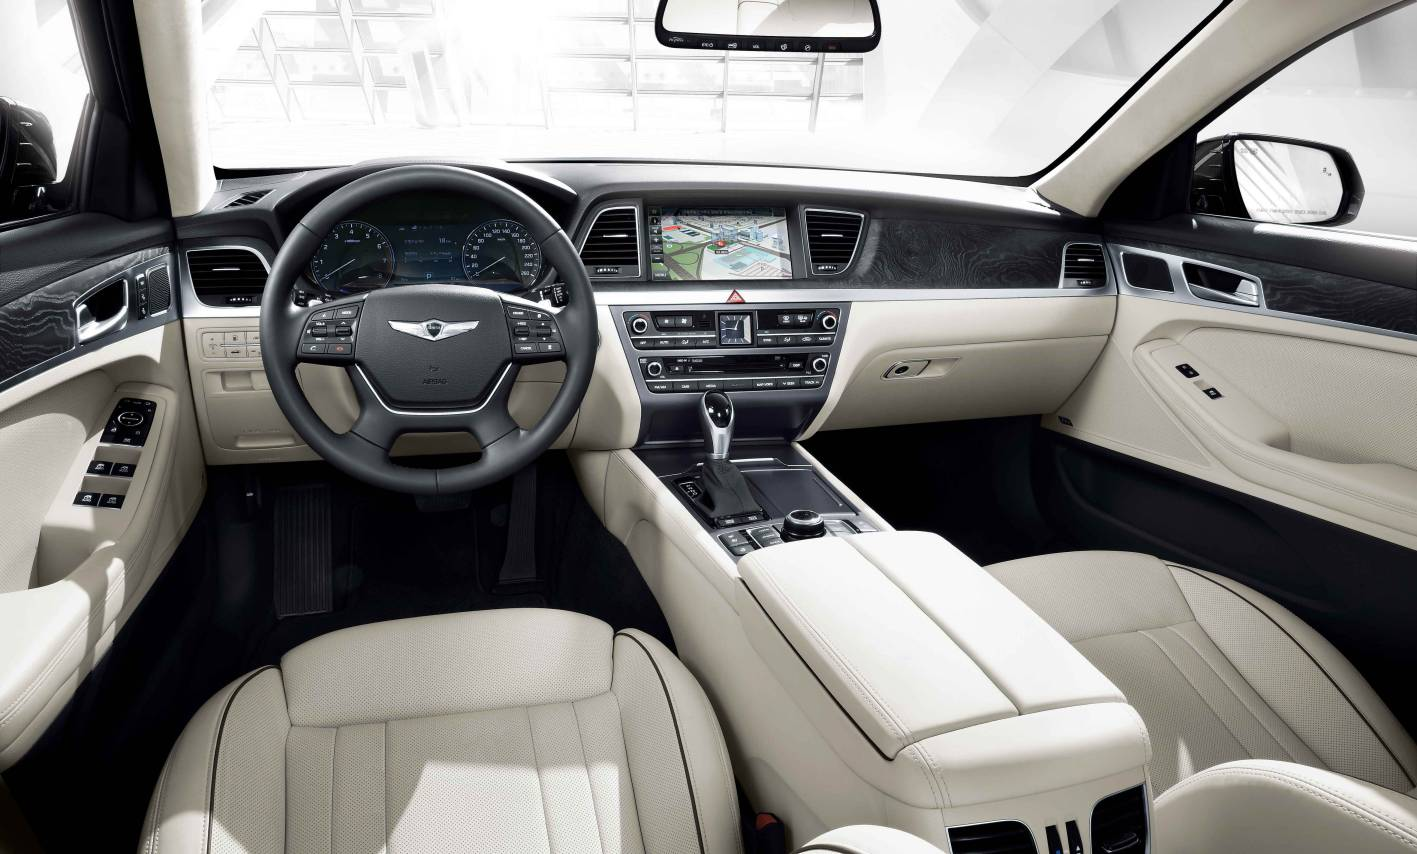 Superb 2014 Hyundai Genesis Sedan Interior Dashboard Idea